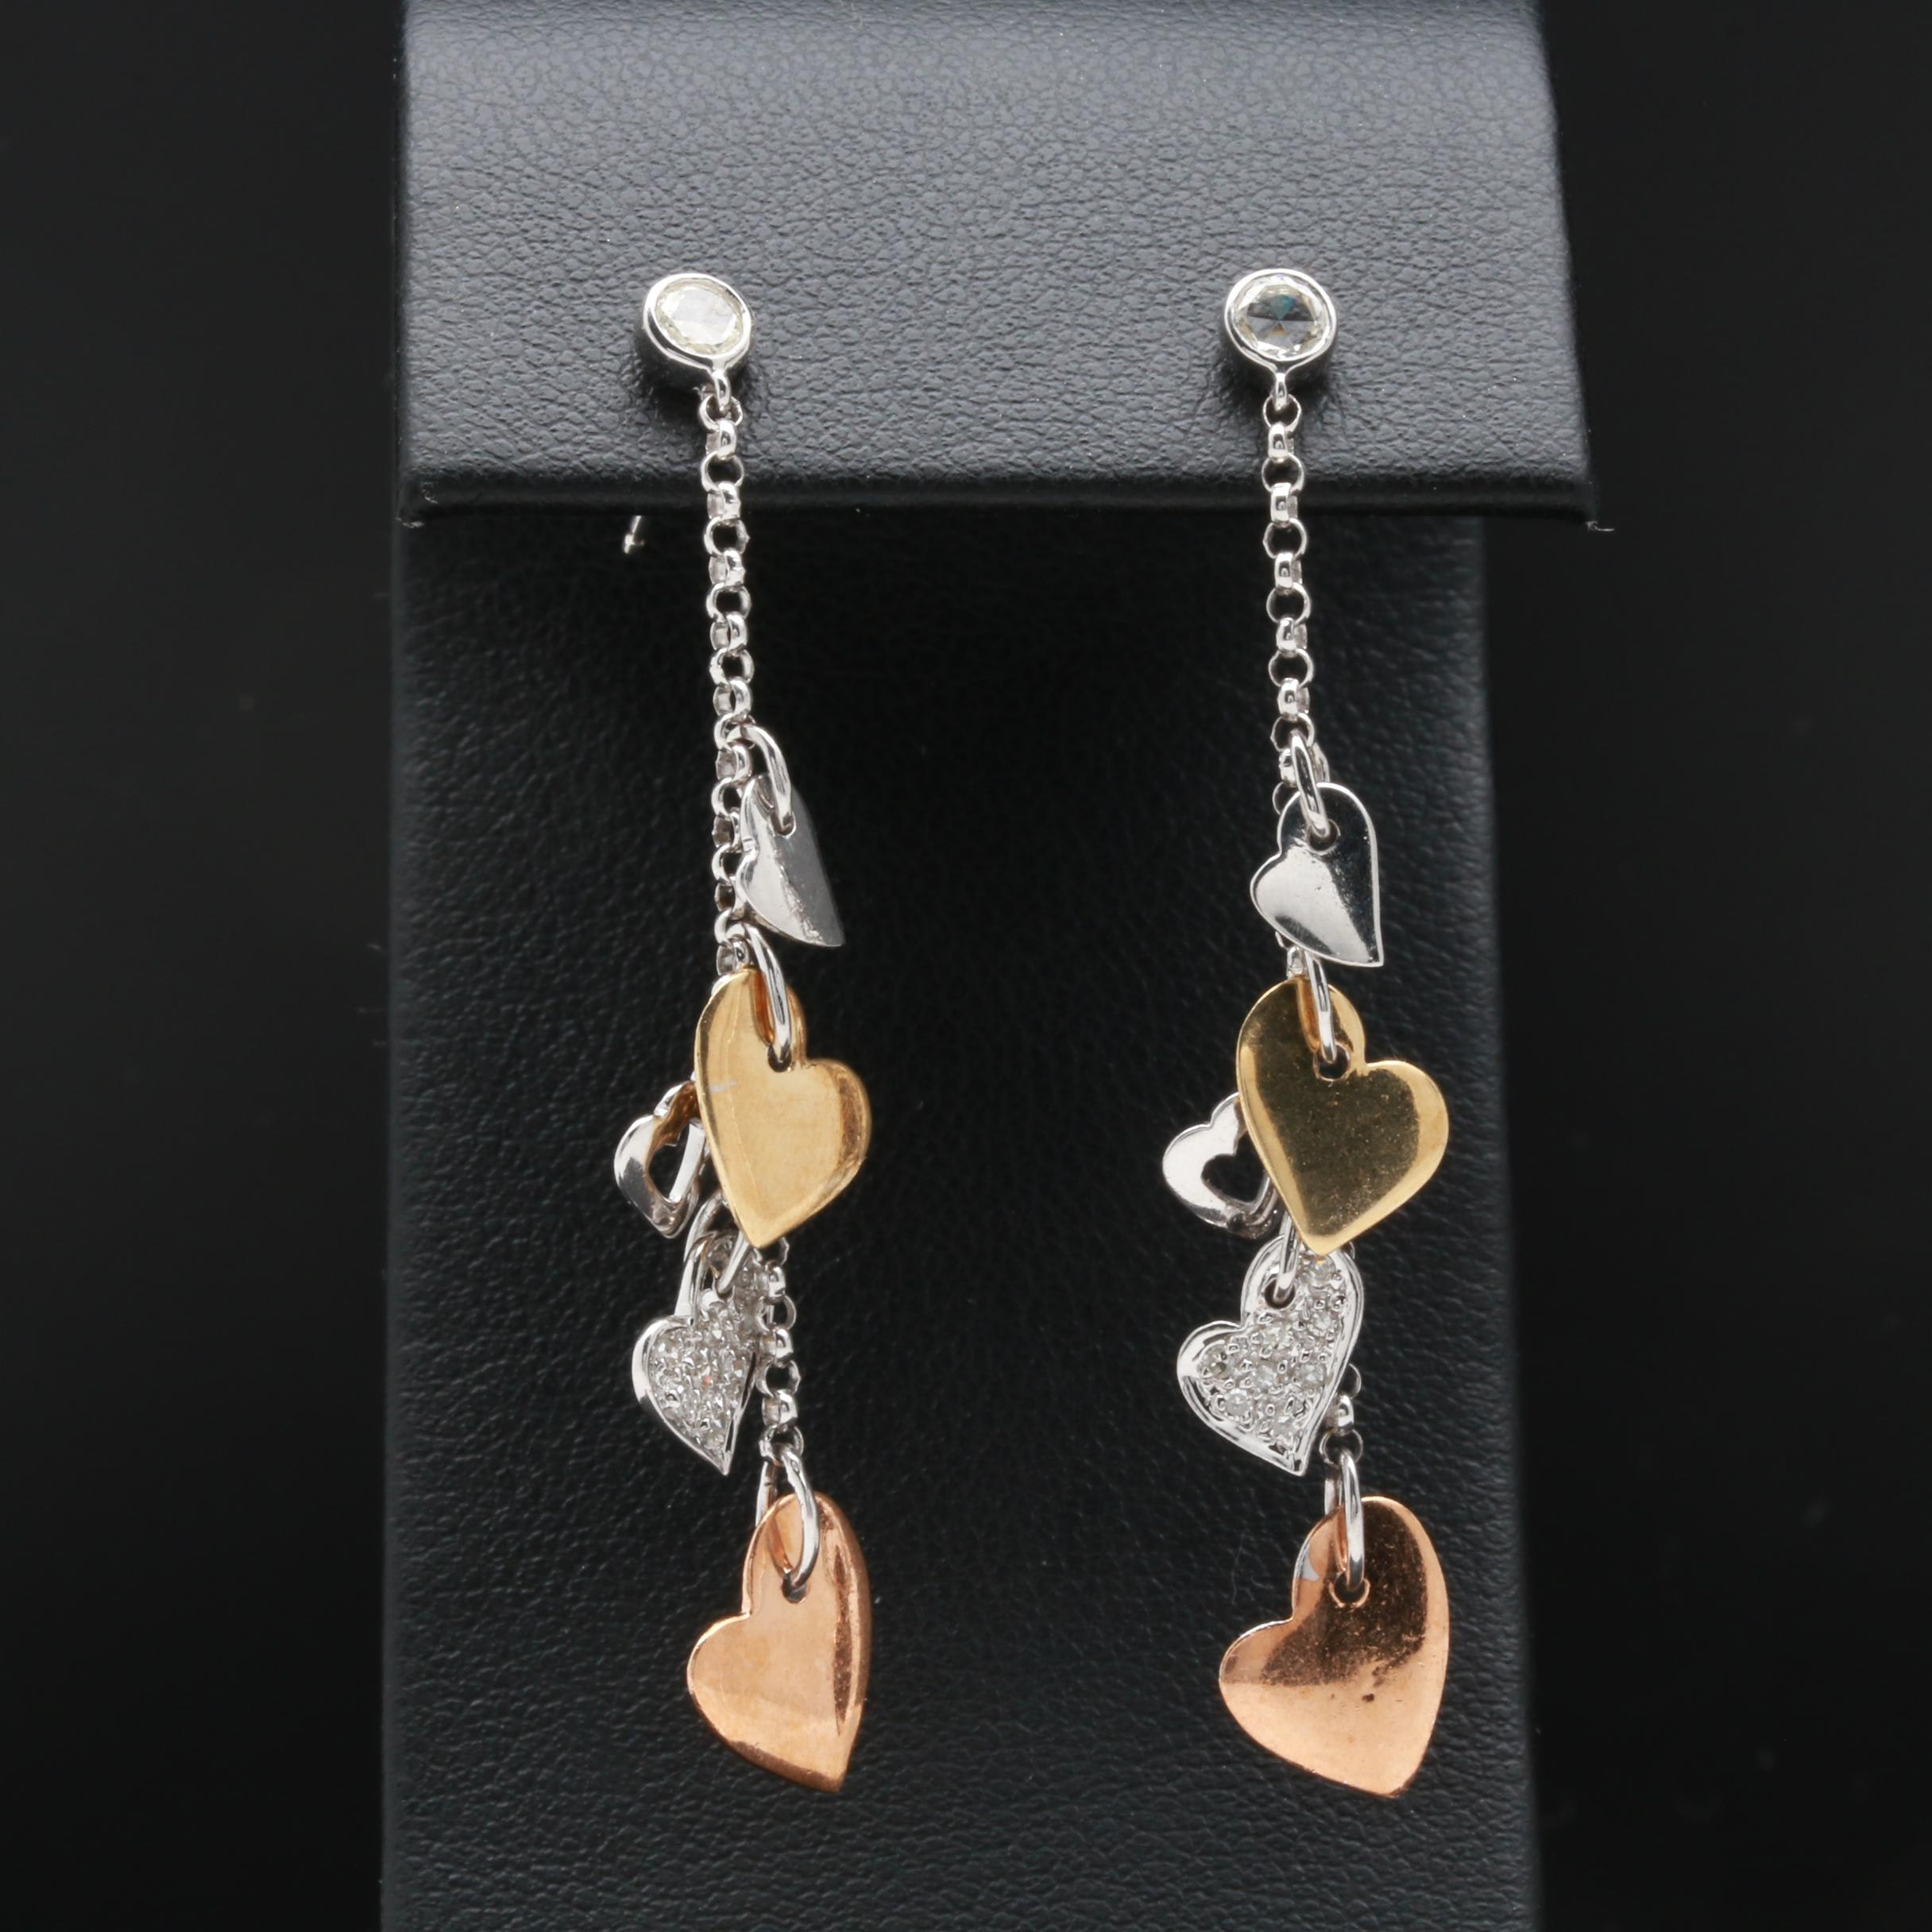 14K Tri-Color Gold and Diamond Earrings